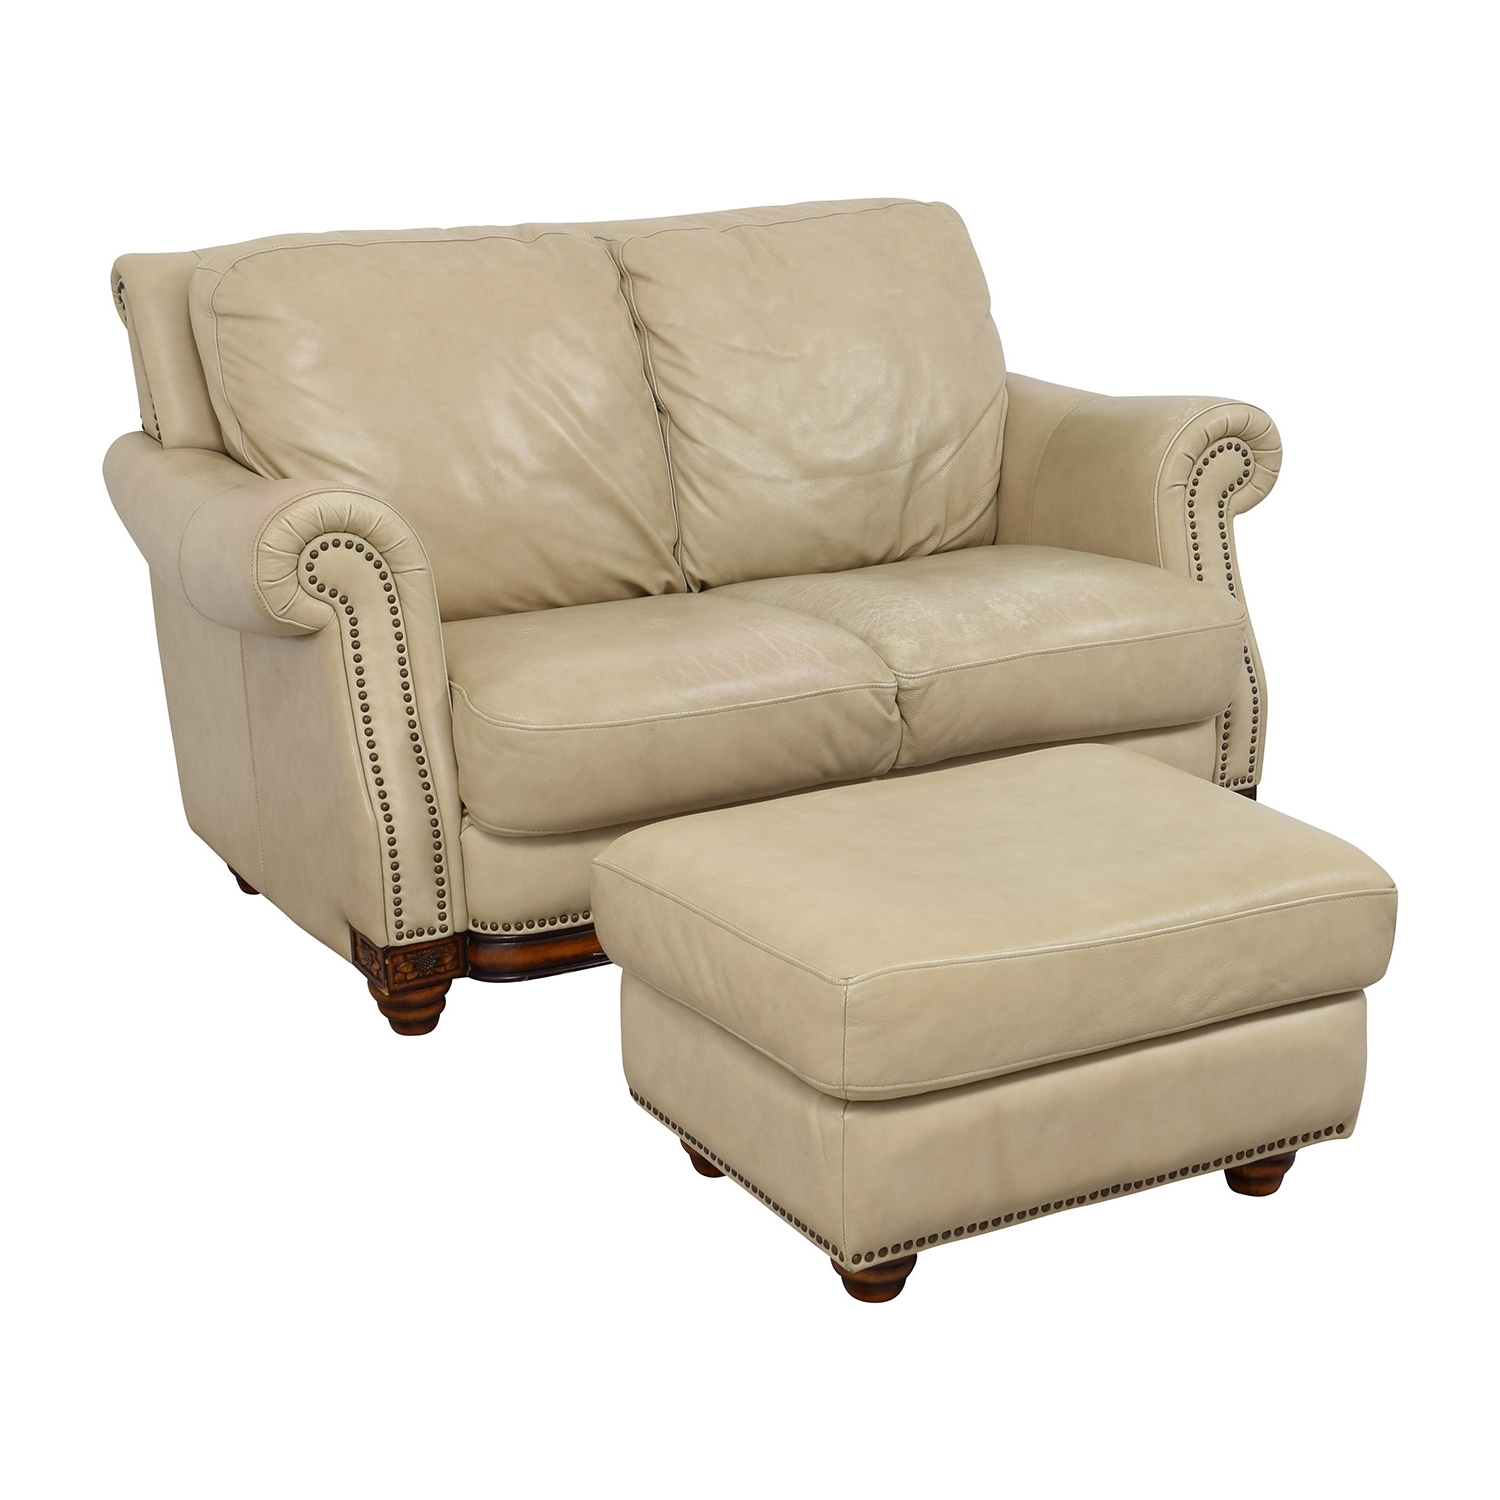 [%74% Off – Raymour & Flanigan Raymour & Flanigan Studded Tan With 2018 Loveseats With Ottoman|Loveseats With Ottoman Throughout Newest 74% Off – Raymour & Flanigan Raymour & Flanigan Studded Tan|Preferred Loveseats With Ottoman Inside 74% Off – Raymour & Flanigan Raymour & Flanigan Studded Tan|Well Known 74% Off – Raymour & Flanigan Raymour & Flanigan Studded Tan For Loveseats With Ottoman%] (View 5 of 20)